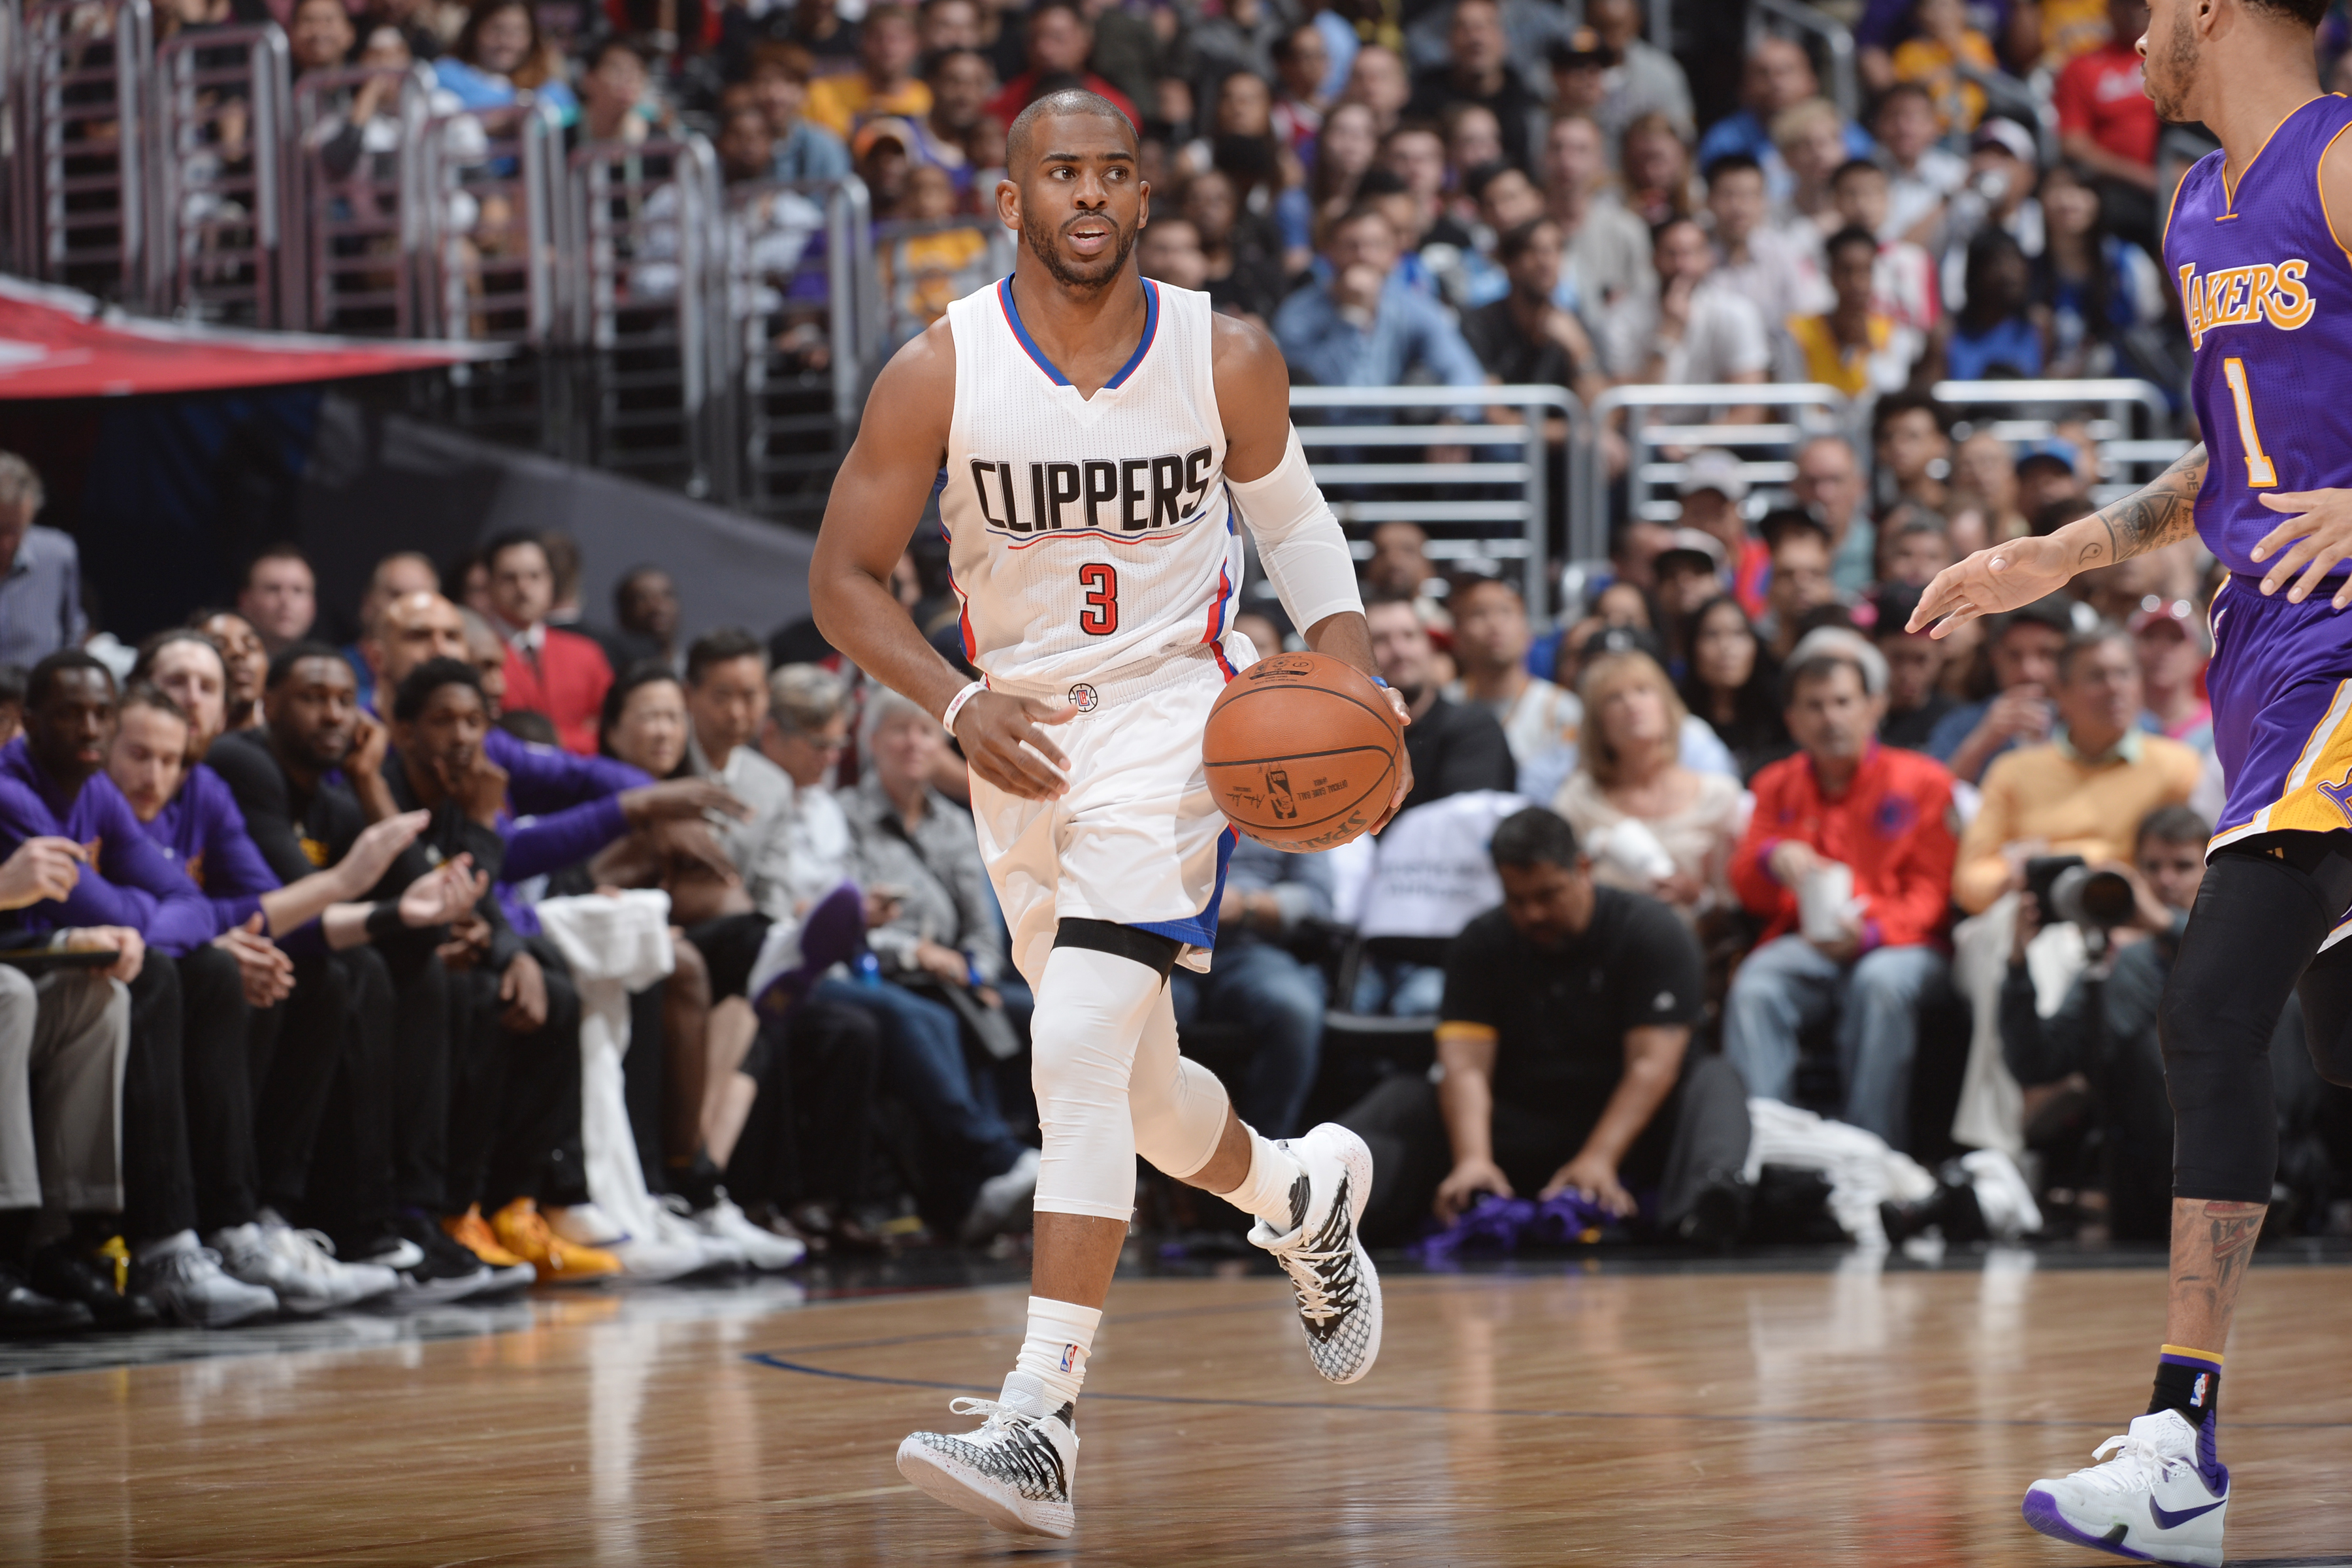 LOS ANGELES, CA - APRIL 5:  Chris Paul #3 of the Los Angeles Clippers handles the ball against the Los Angeles Lakers on April 5, 2016 at STAPLES Center in Los Angeles, California. (Photo by Andrew D. Bernstein/NBAE via Getty Images)